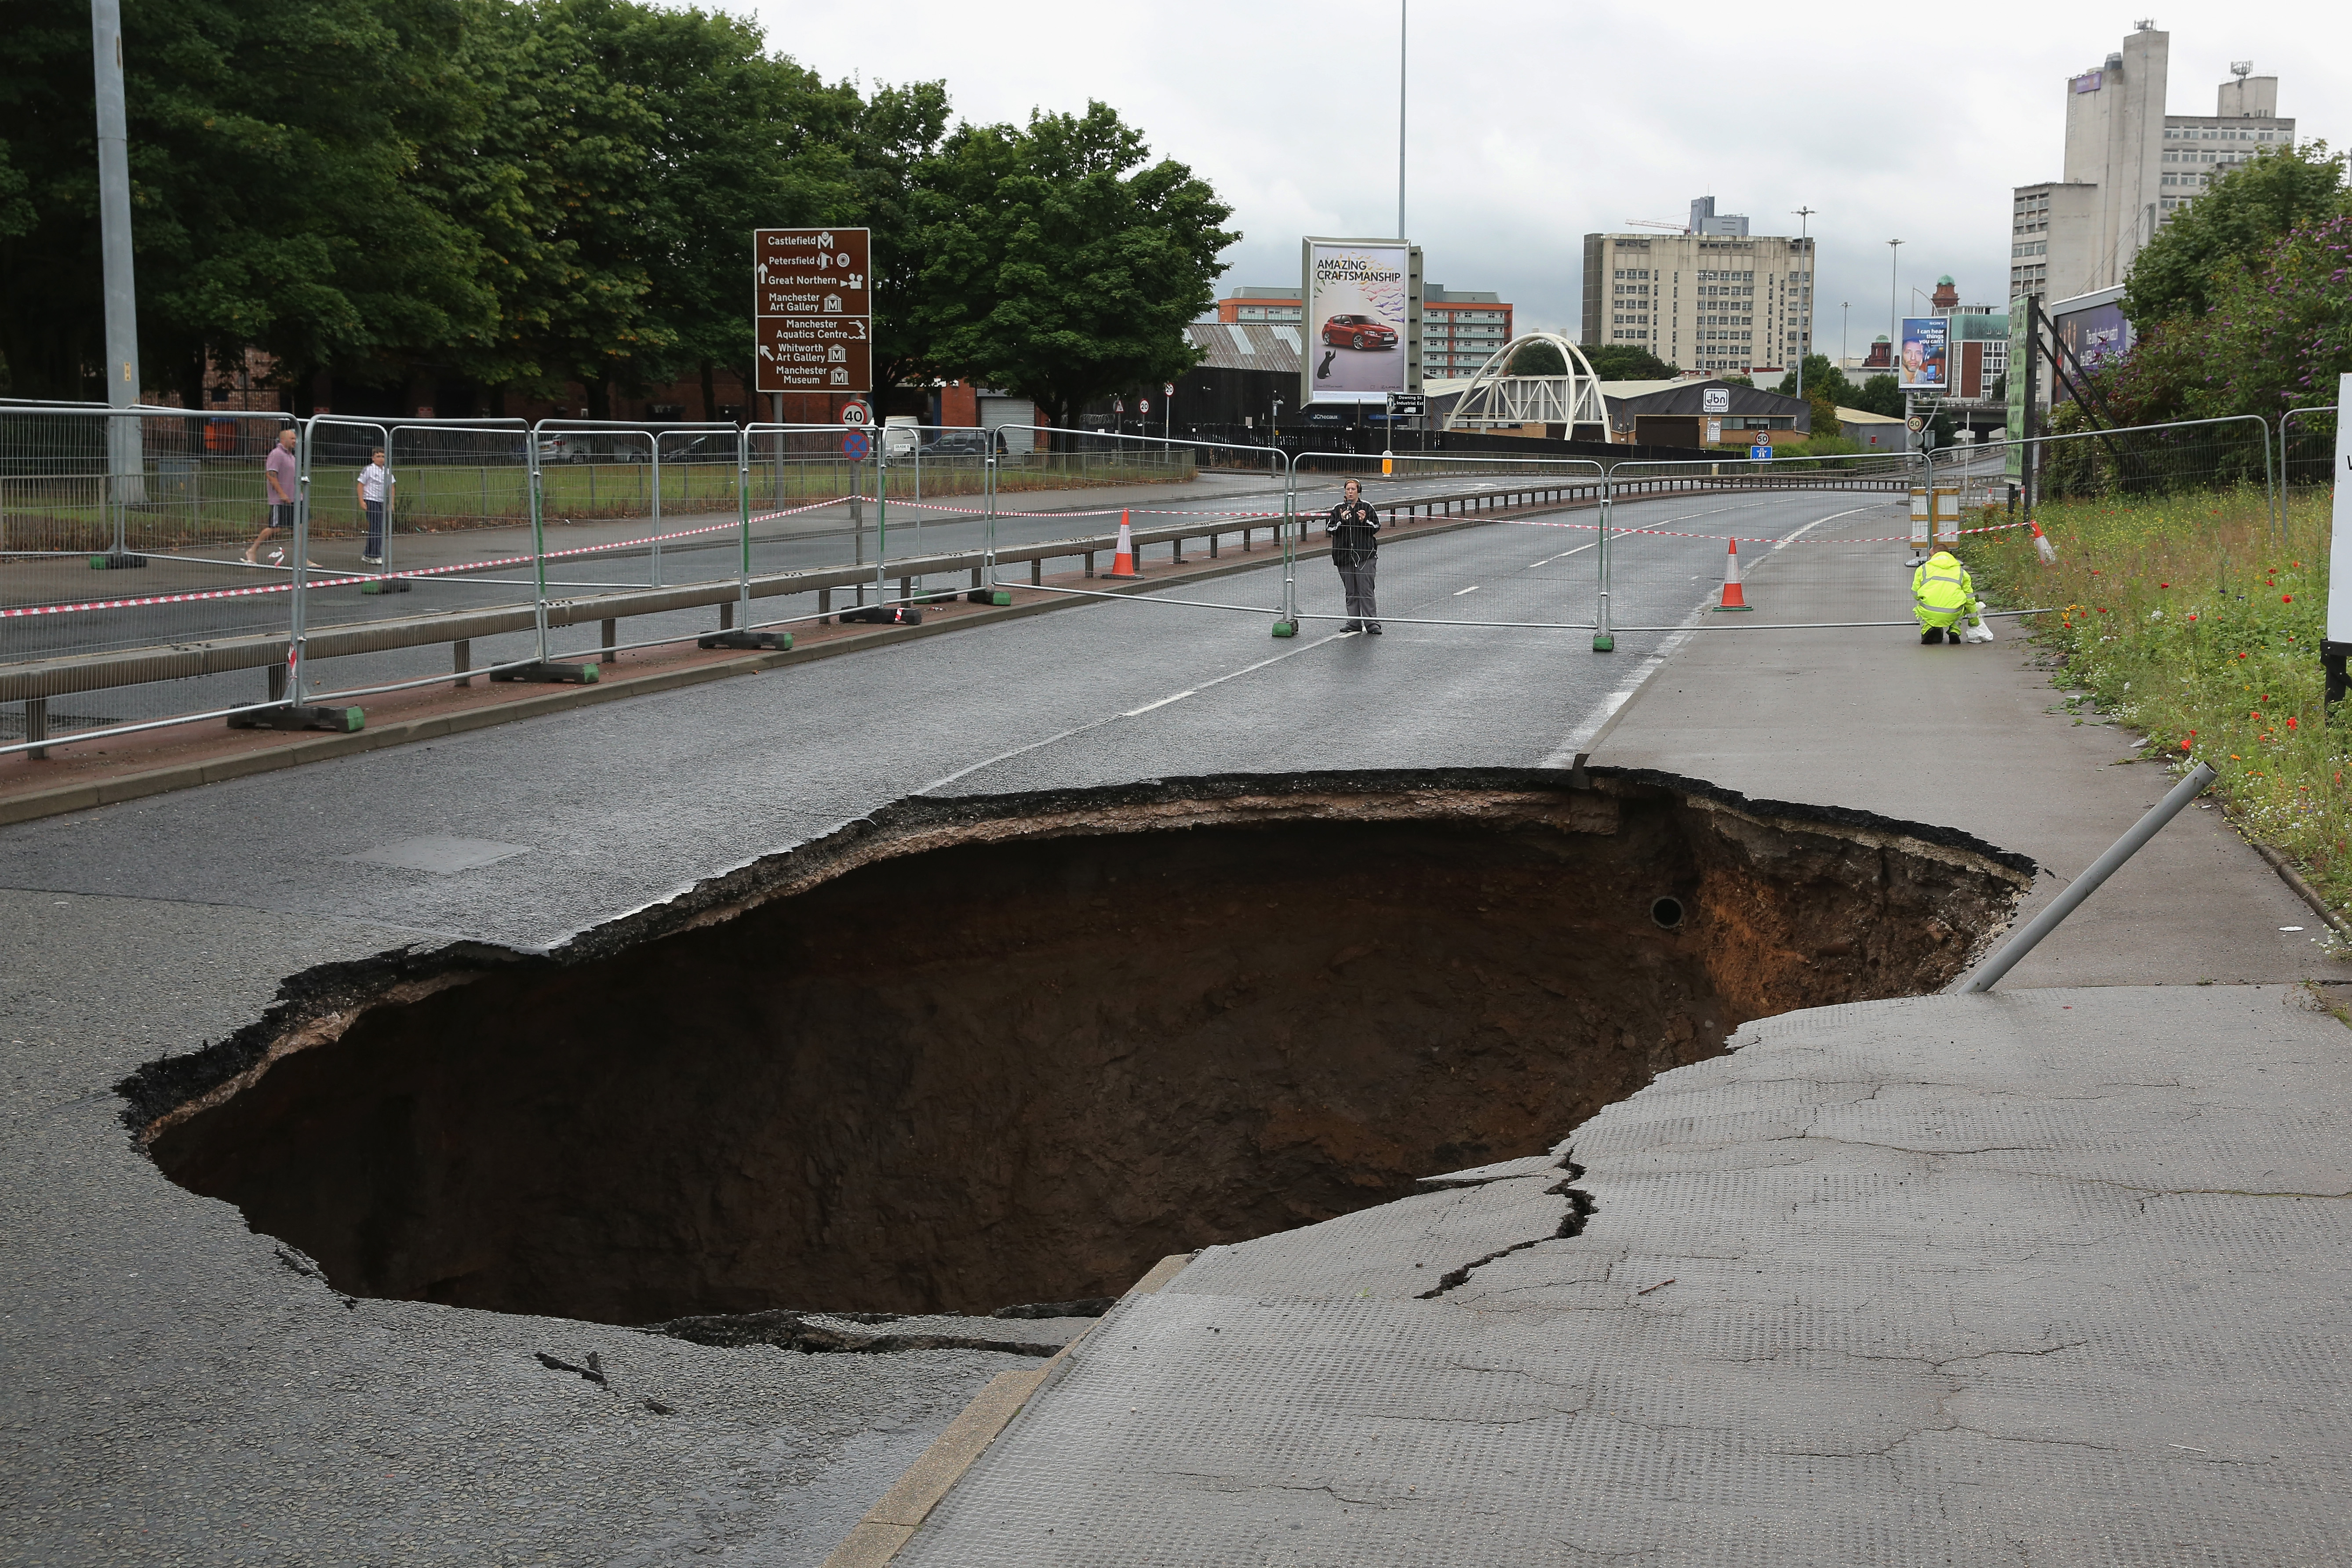 A sink hole appears on Mancunian Way in Manchester after heavy rain on August 14, 2015 in Manchester, England.